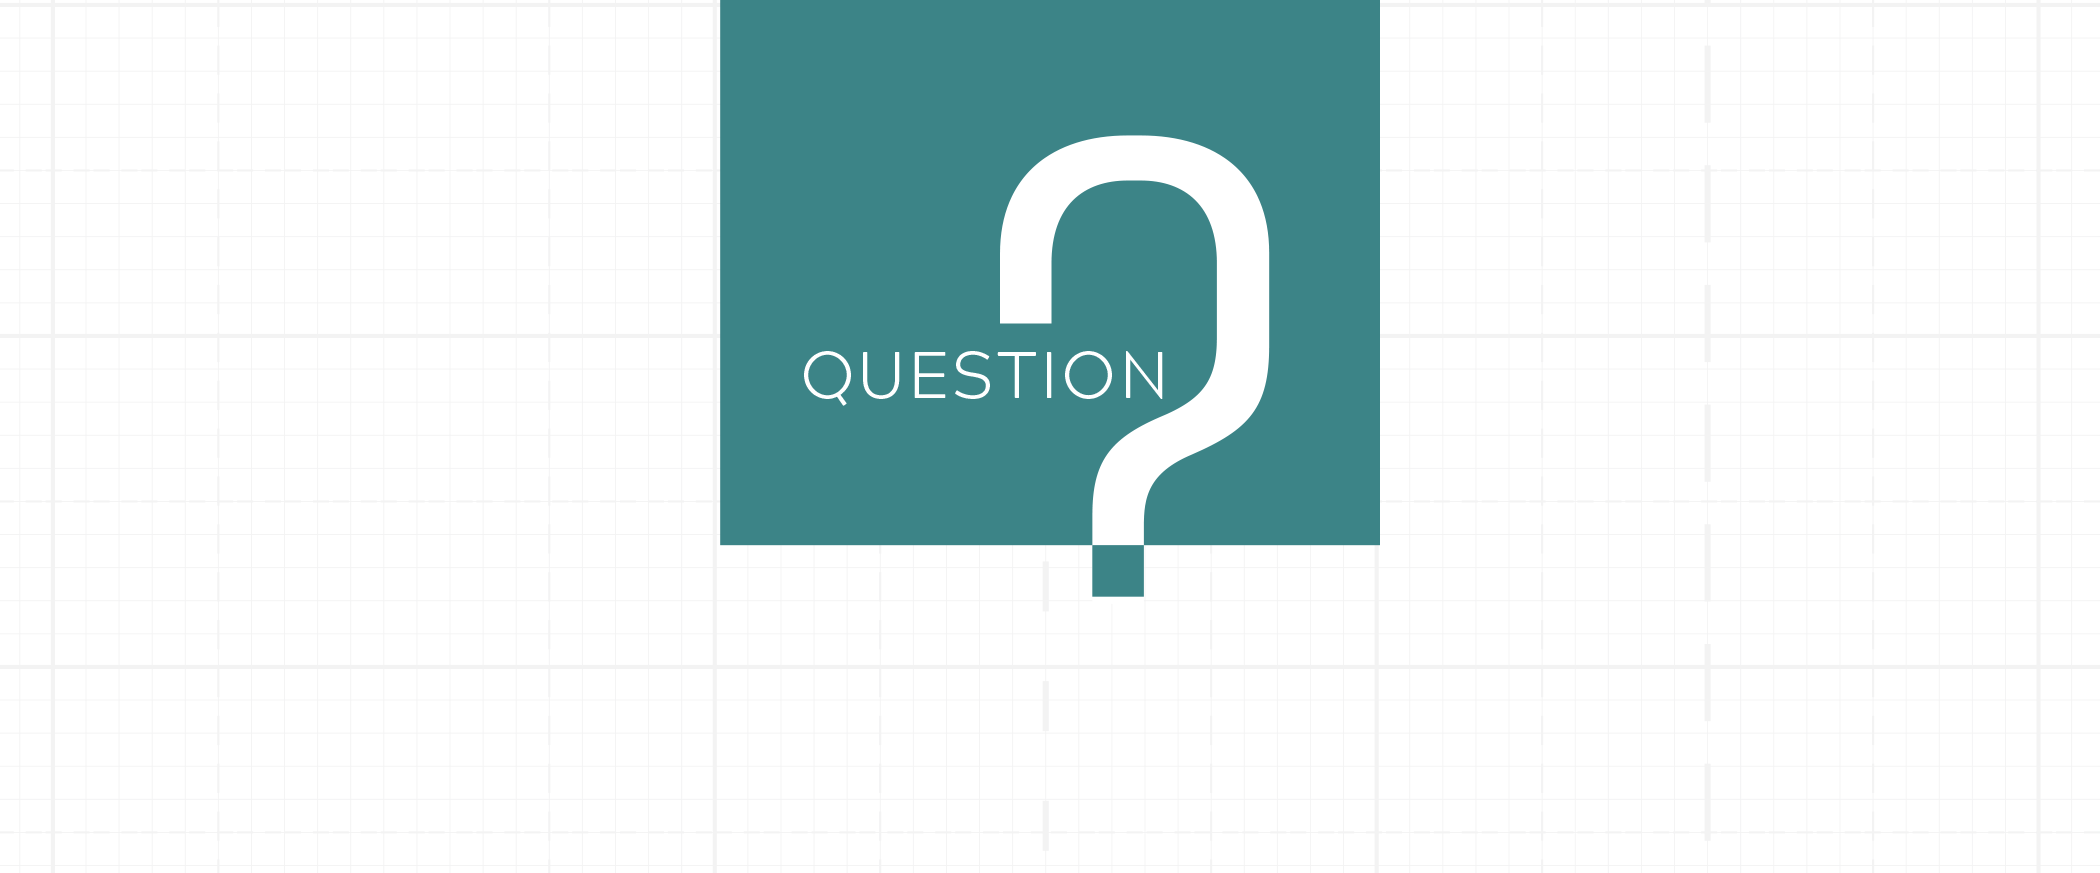 Question header illustration